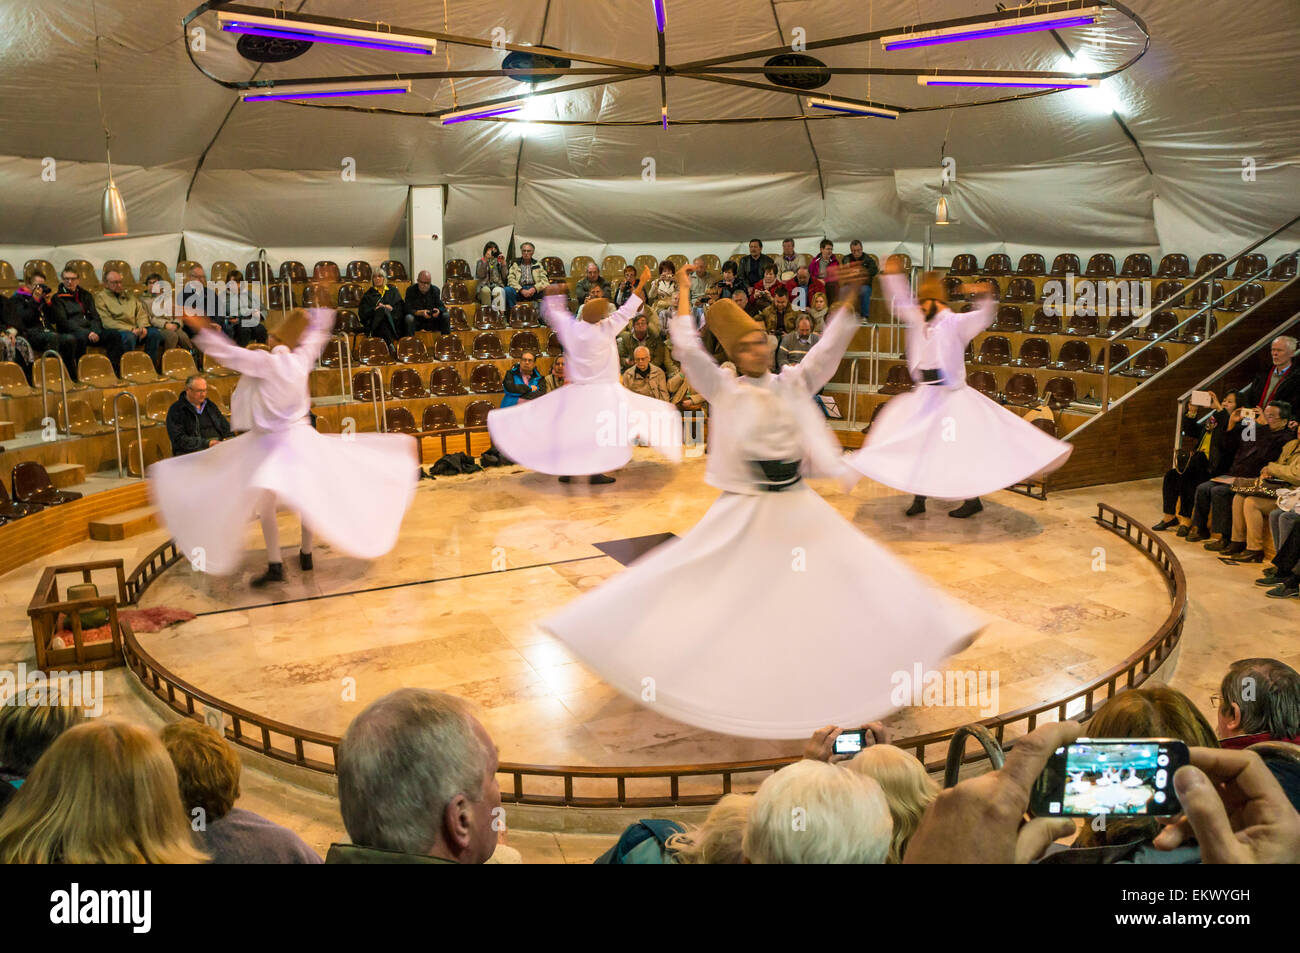 Whirling Dervishes and tourists, Pamukkale, Turkey - Stock Image